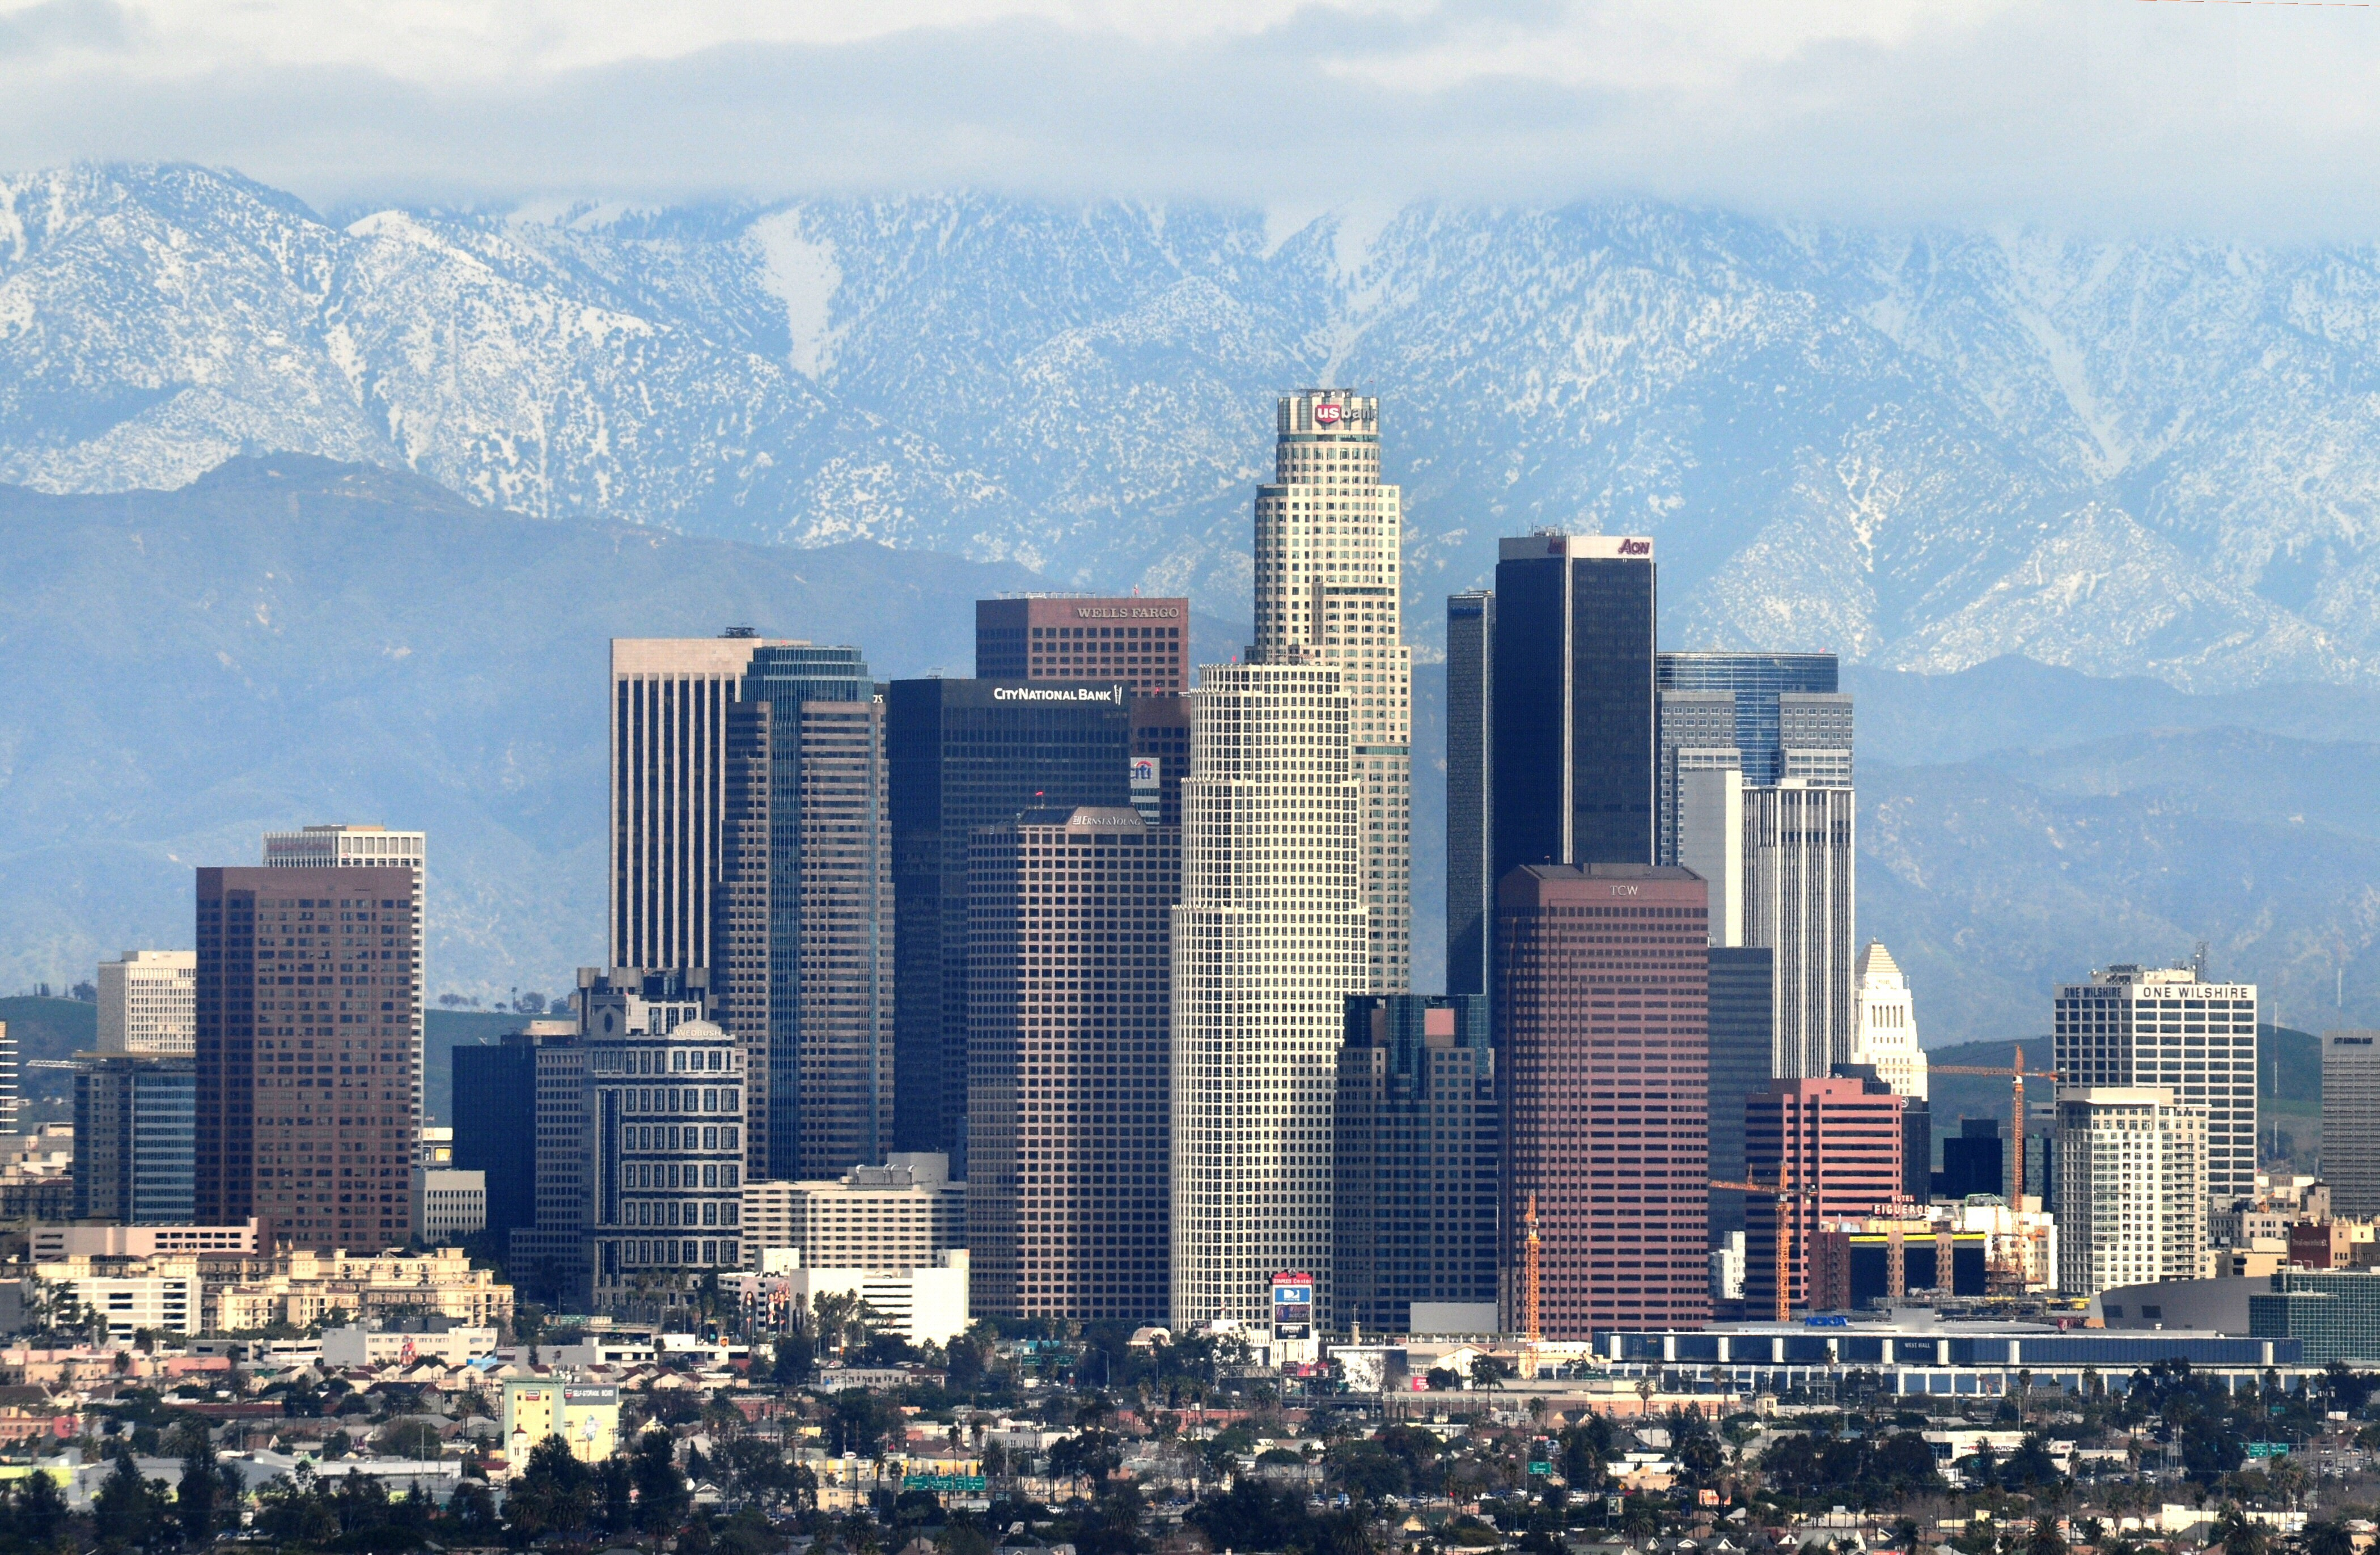 4K wallpaper   City   usa California Los Angeles   4198x2743 4198x2743